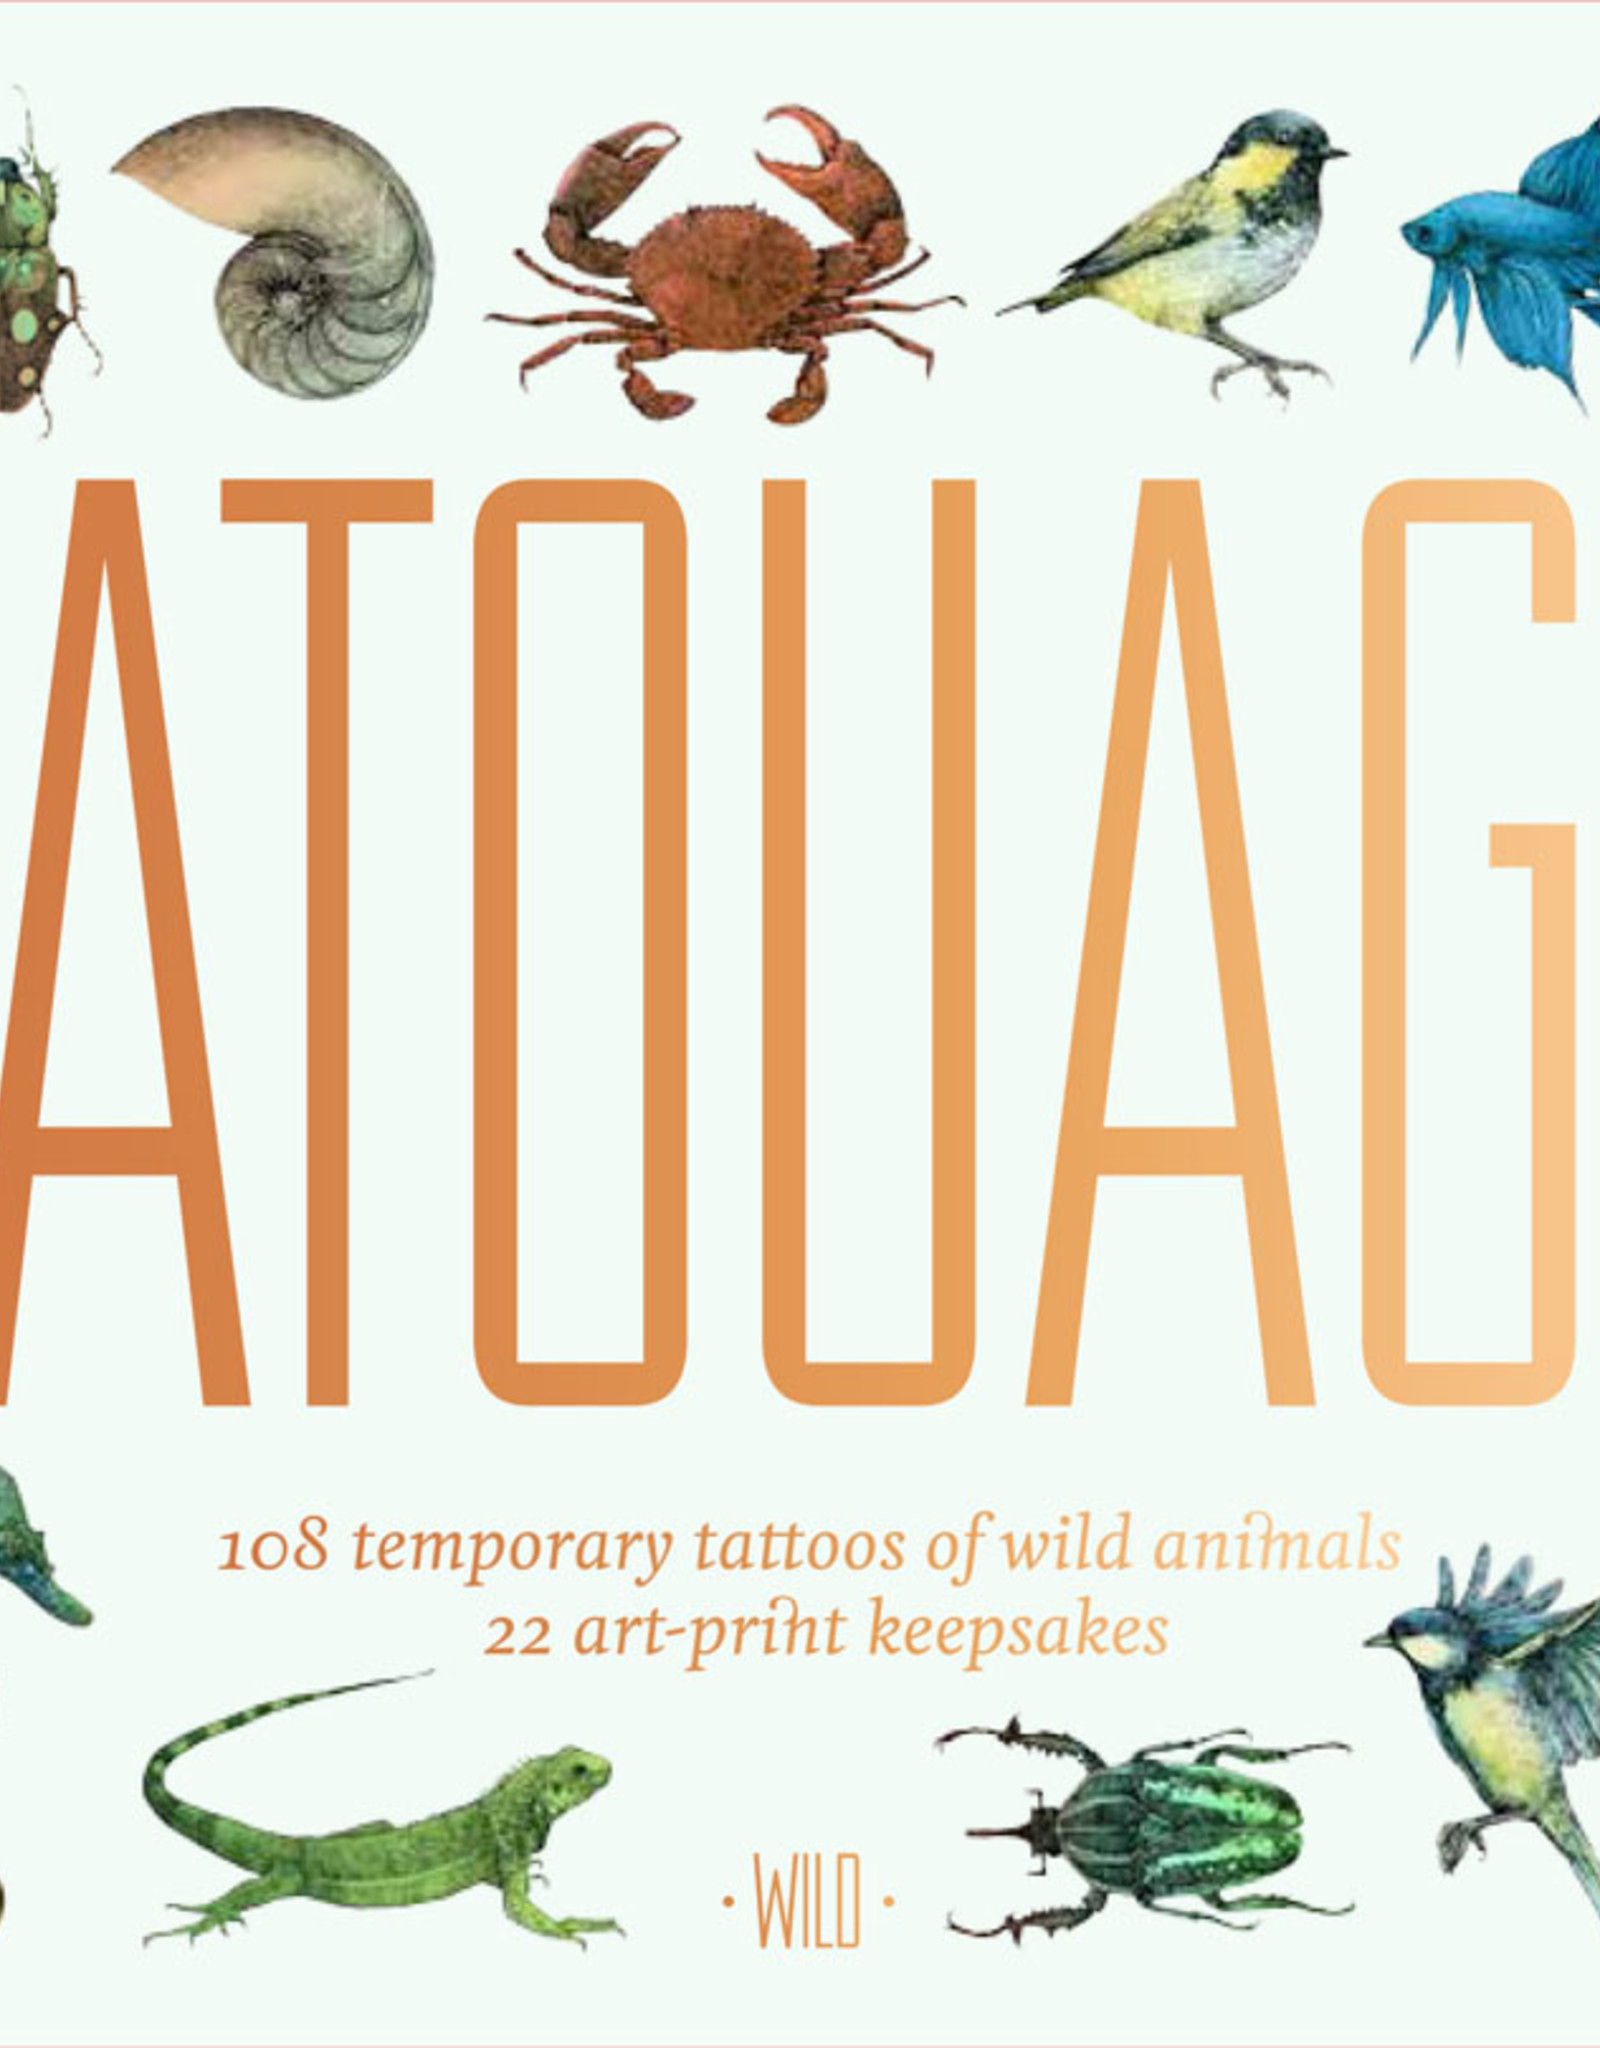 Tatouage: Wild 108 Temporary Tattoos of Wild Animals by Lucille Clerc